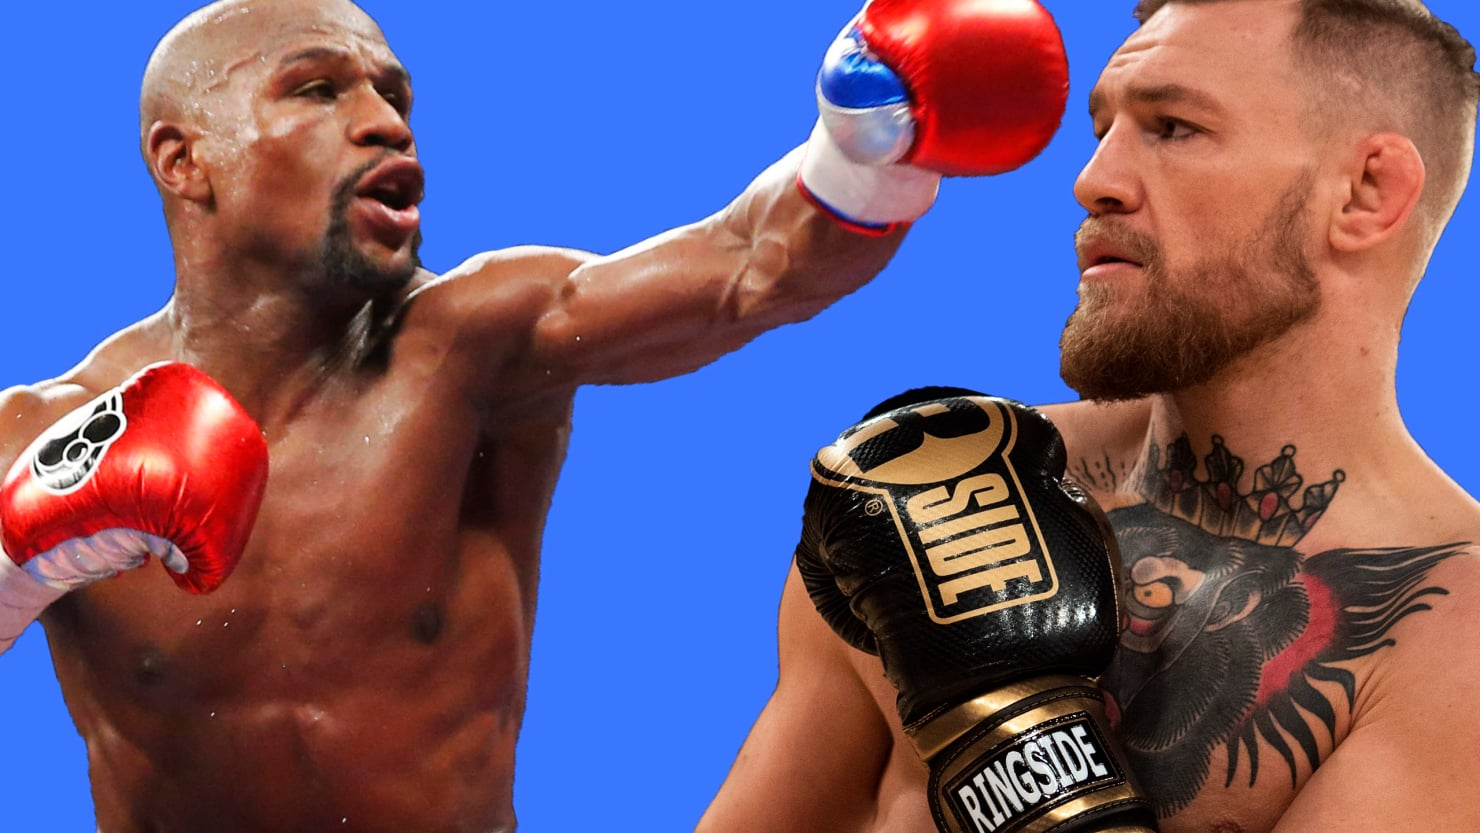 WATCH HIGHLIGHTS: Floyd Mayweather Jr. vs. Conor McGregor